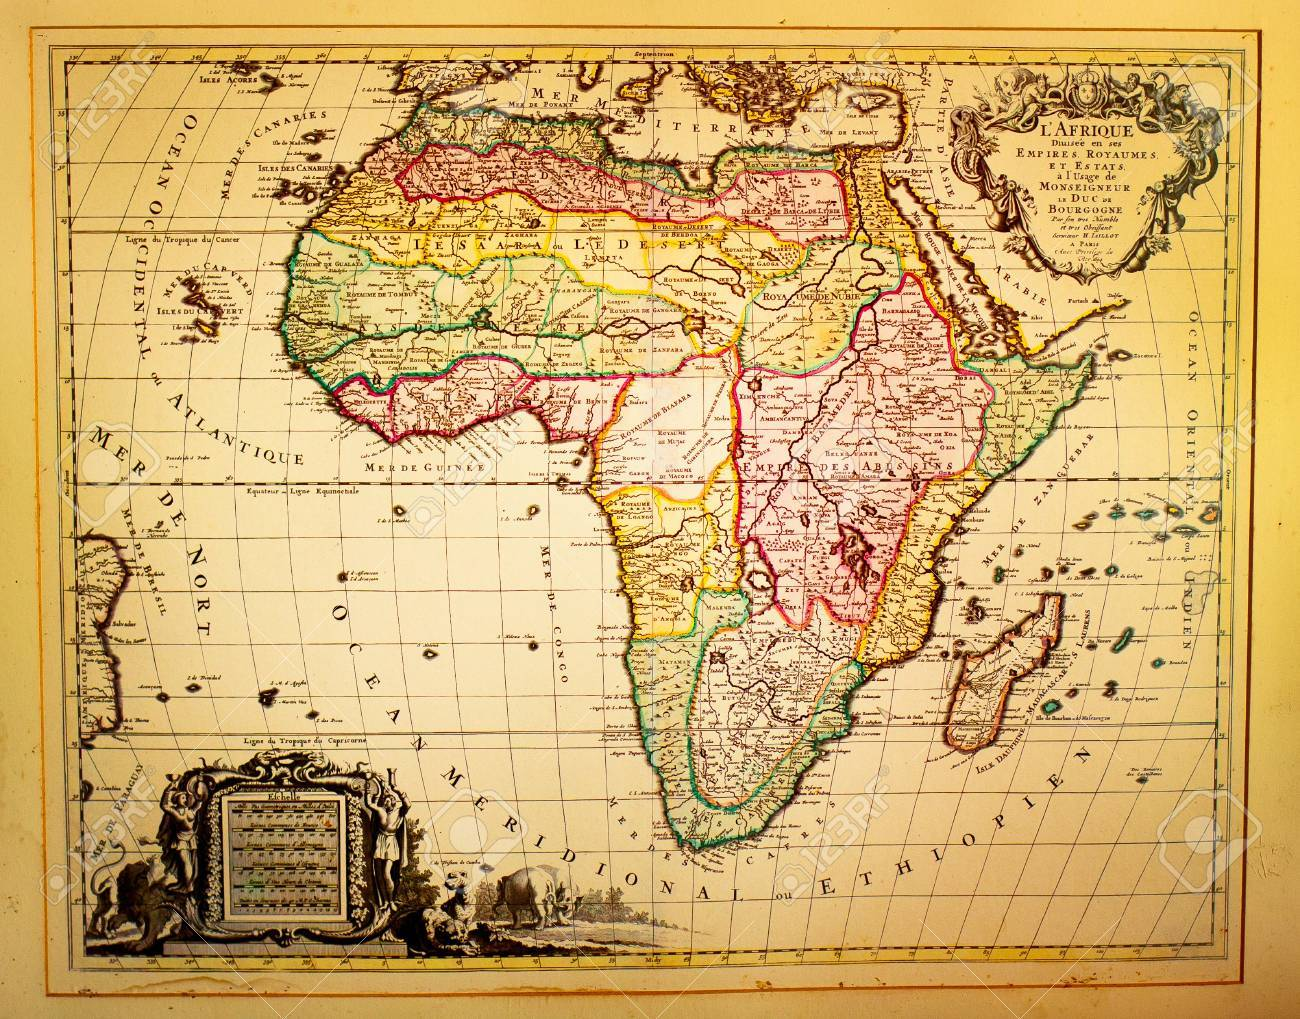 Ancient vintage map depicting Africa in the 19th century on geographical map of africa, current map of africa, blank map of africa, map of the founding of rome, map of africa with countries, climate map of africa, map of medieval africa, map of identity, map of contemporary africa, big map of africa, map of north america, map of cush, map of italian africa, map of norway africa, map of mesopotamia, map of china, map of middle east, map of east africa, map of earth africa, map of historical africa,